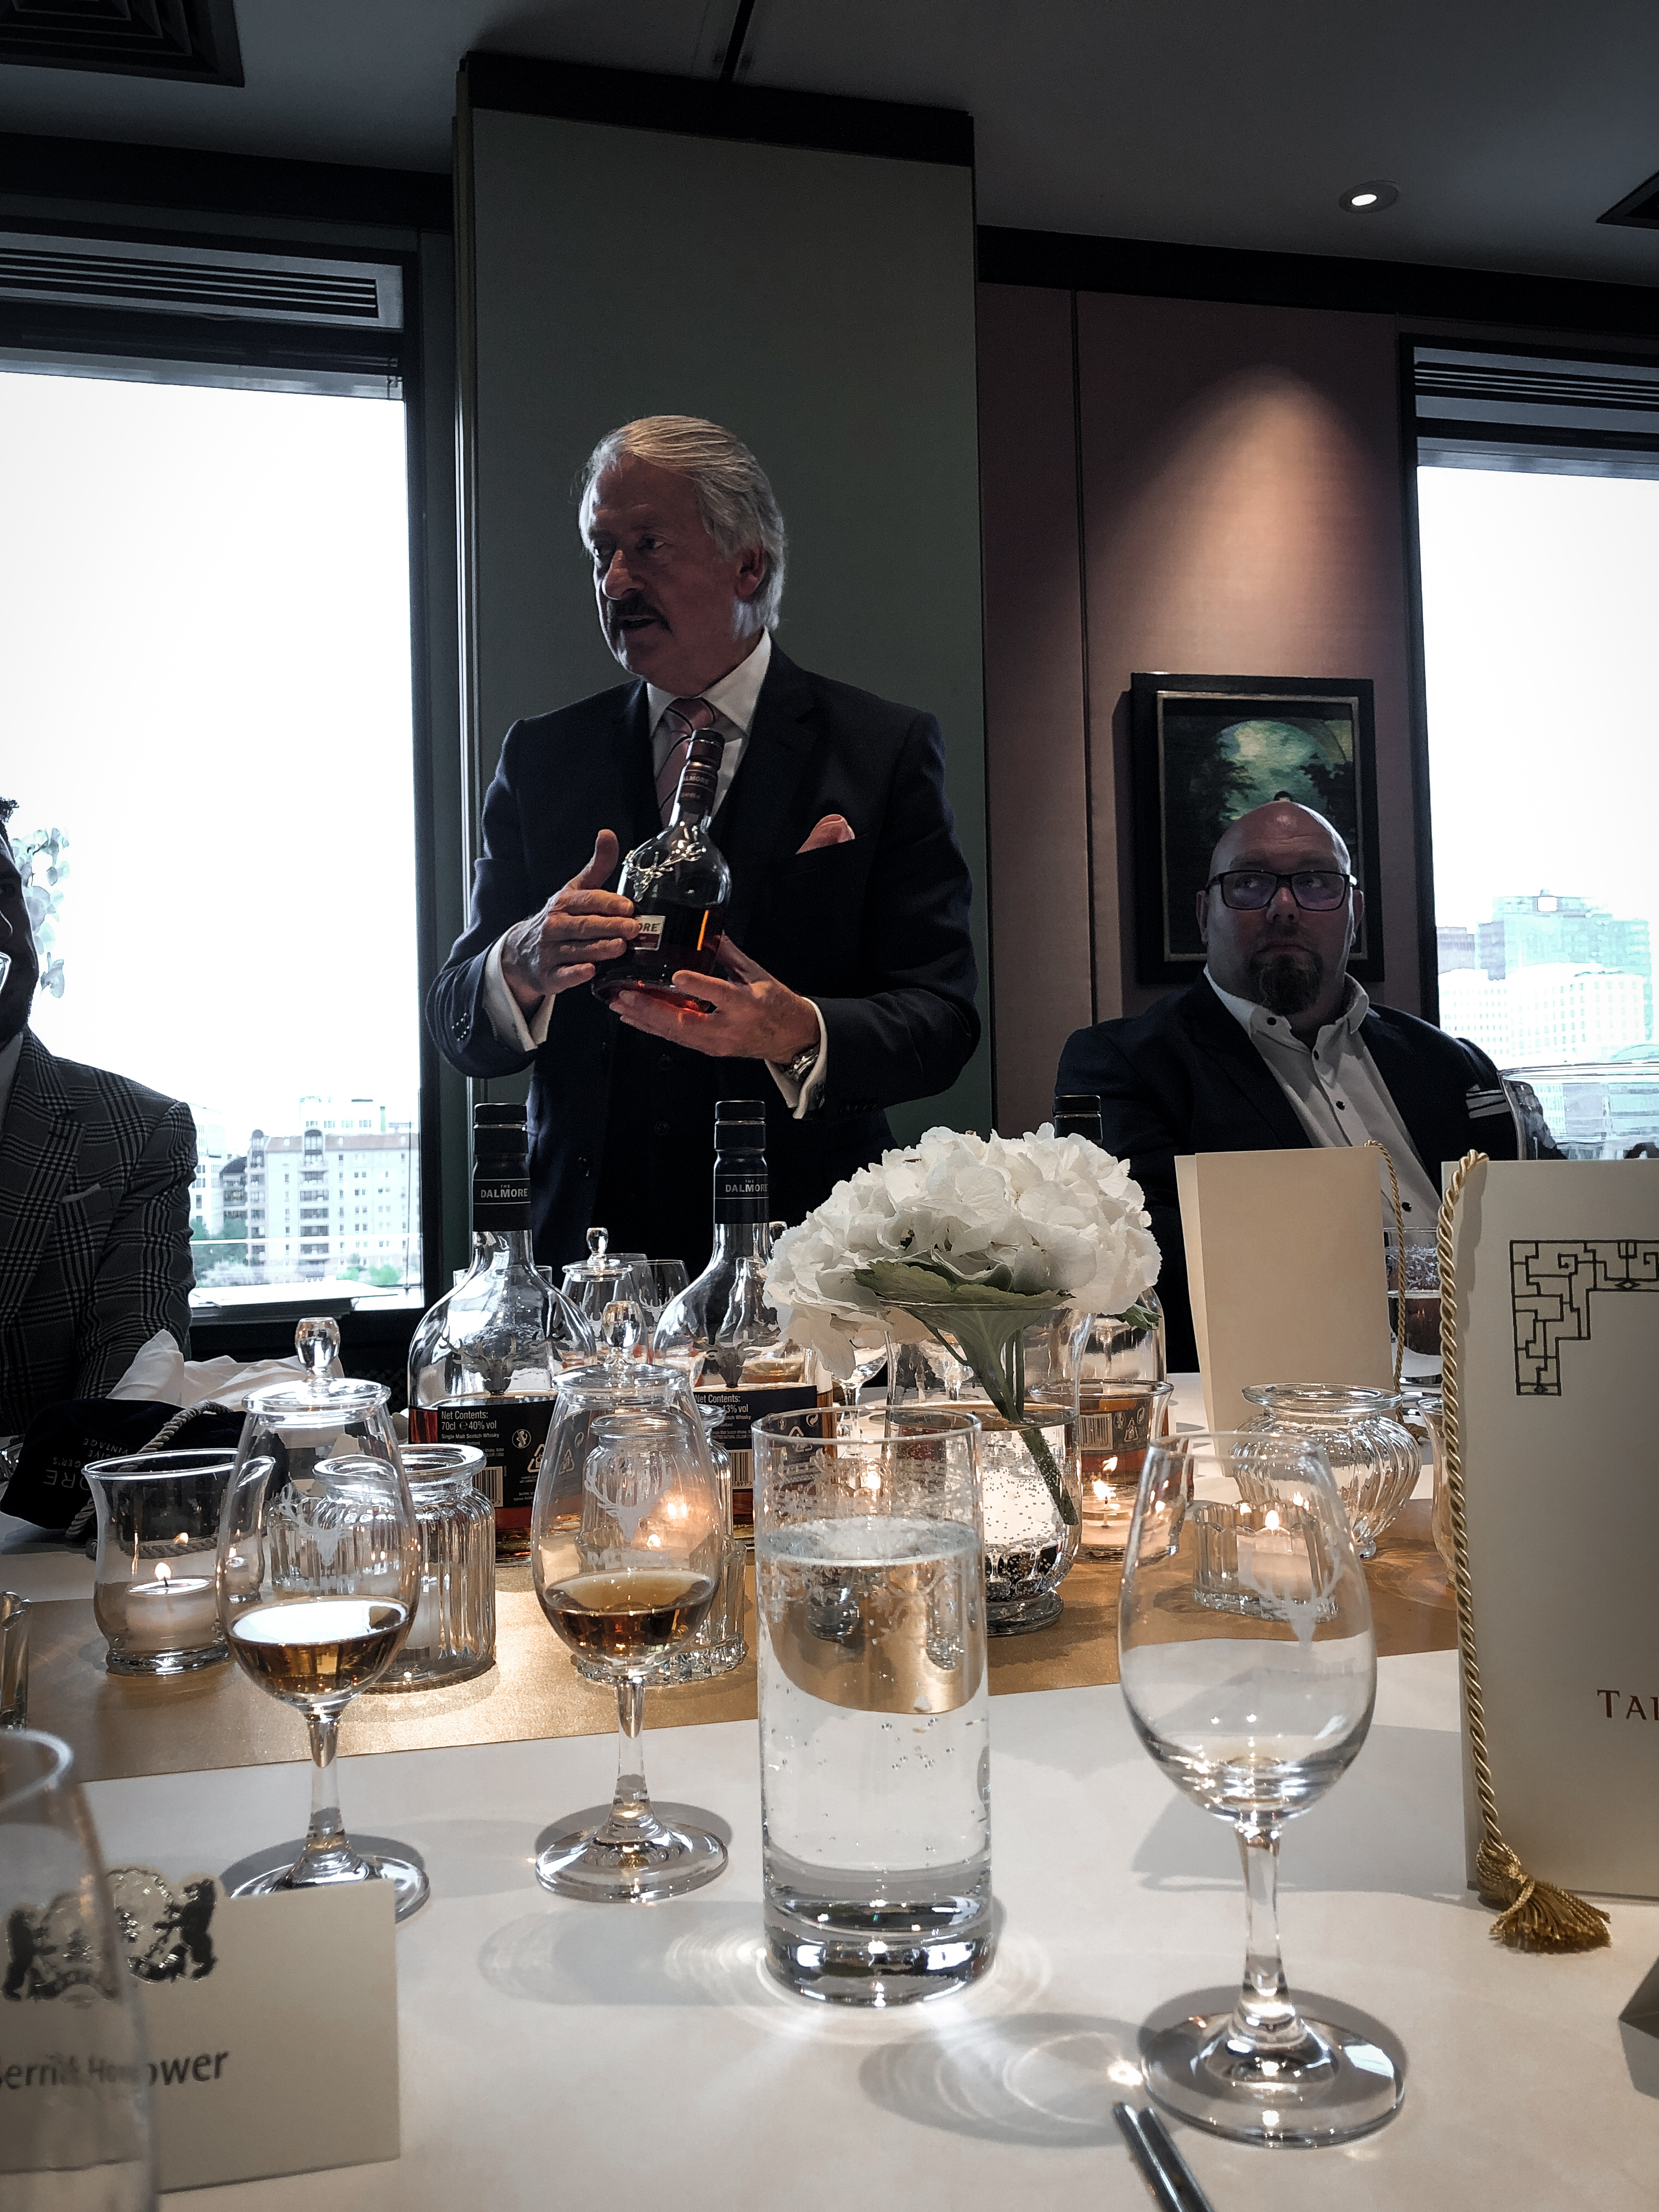 The Royal Feast The Dalmore Whisky Tasting Richard paterson China Club Berlin Blogger